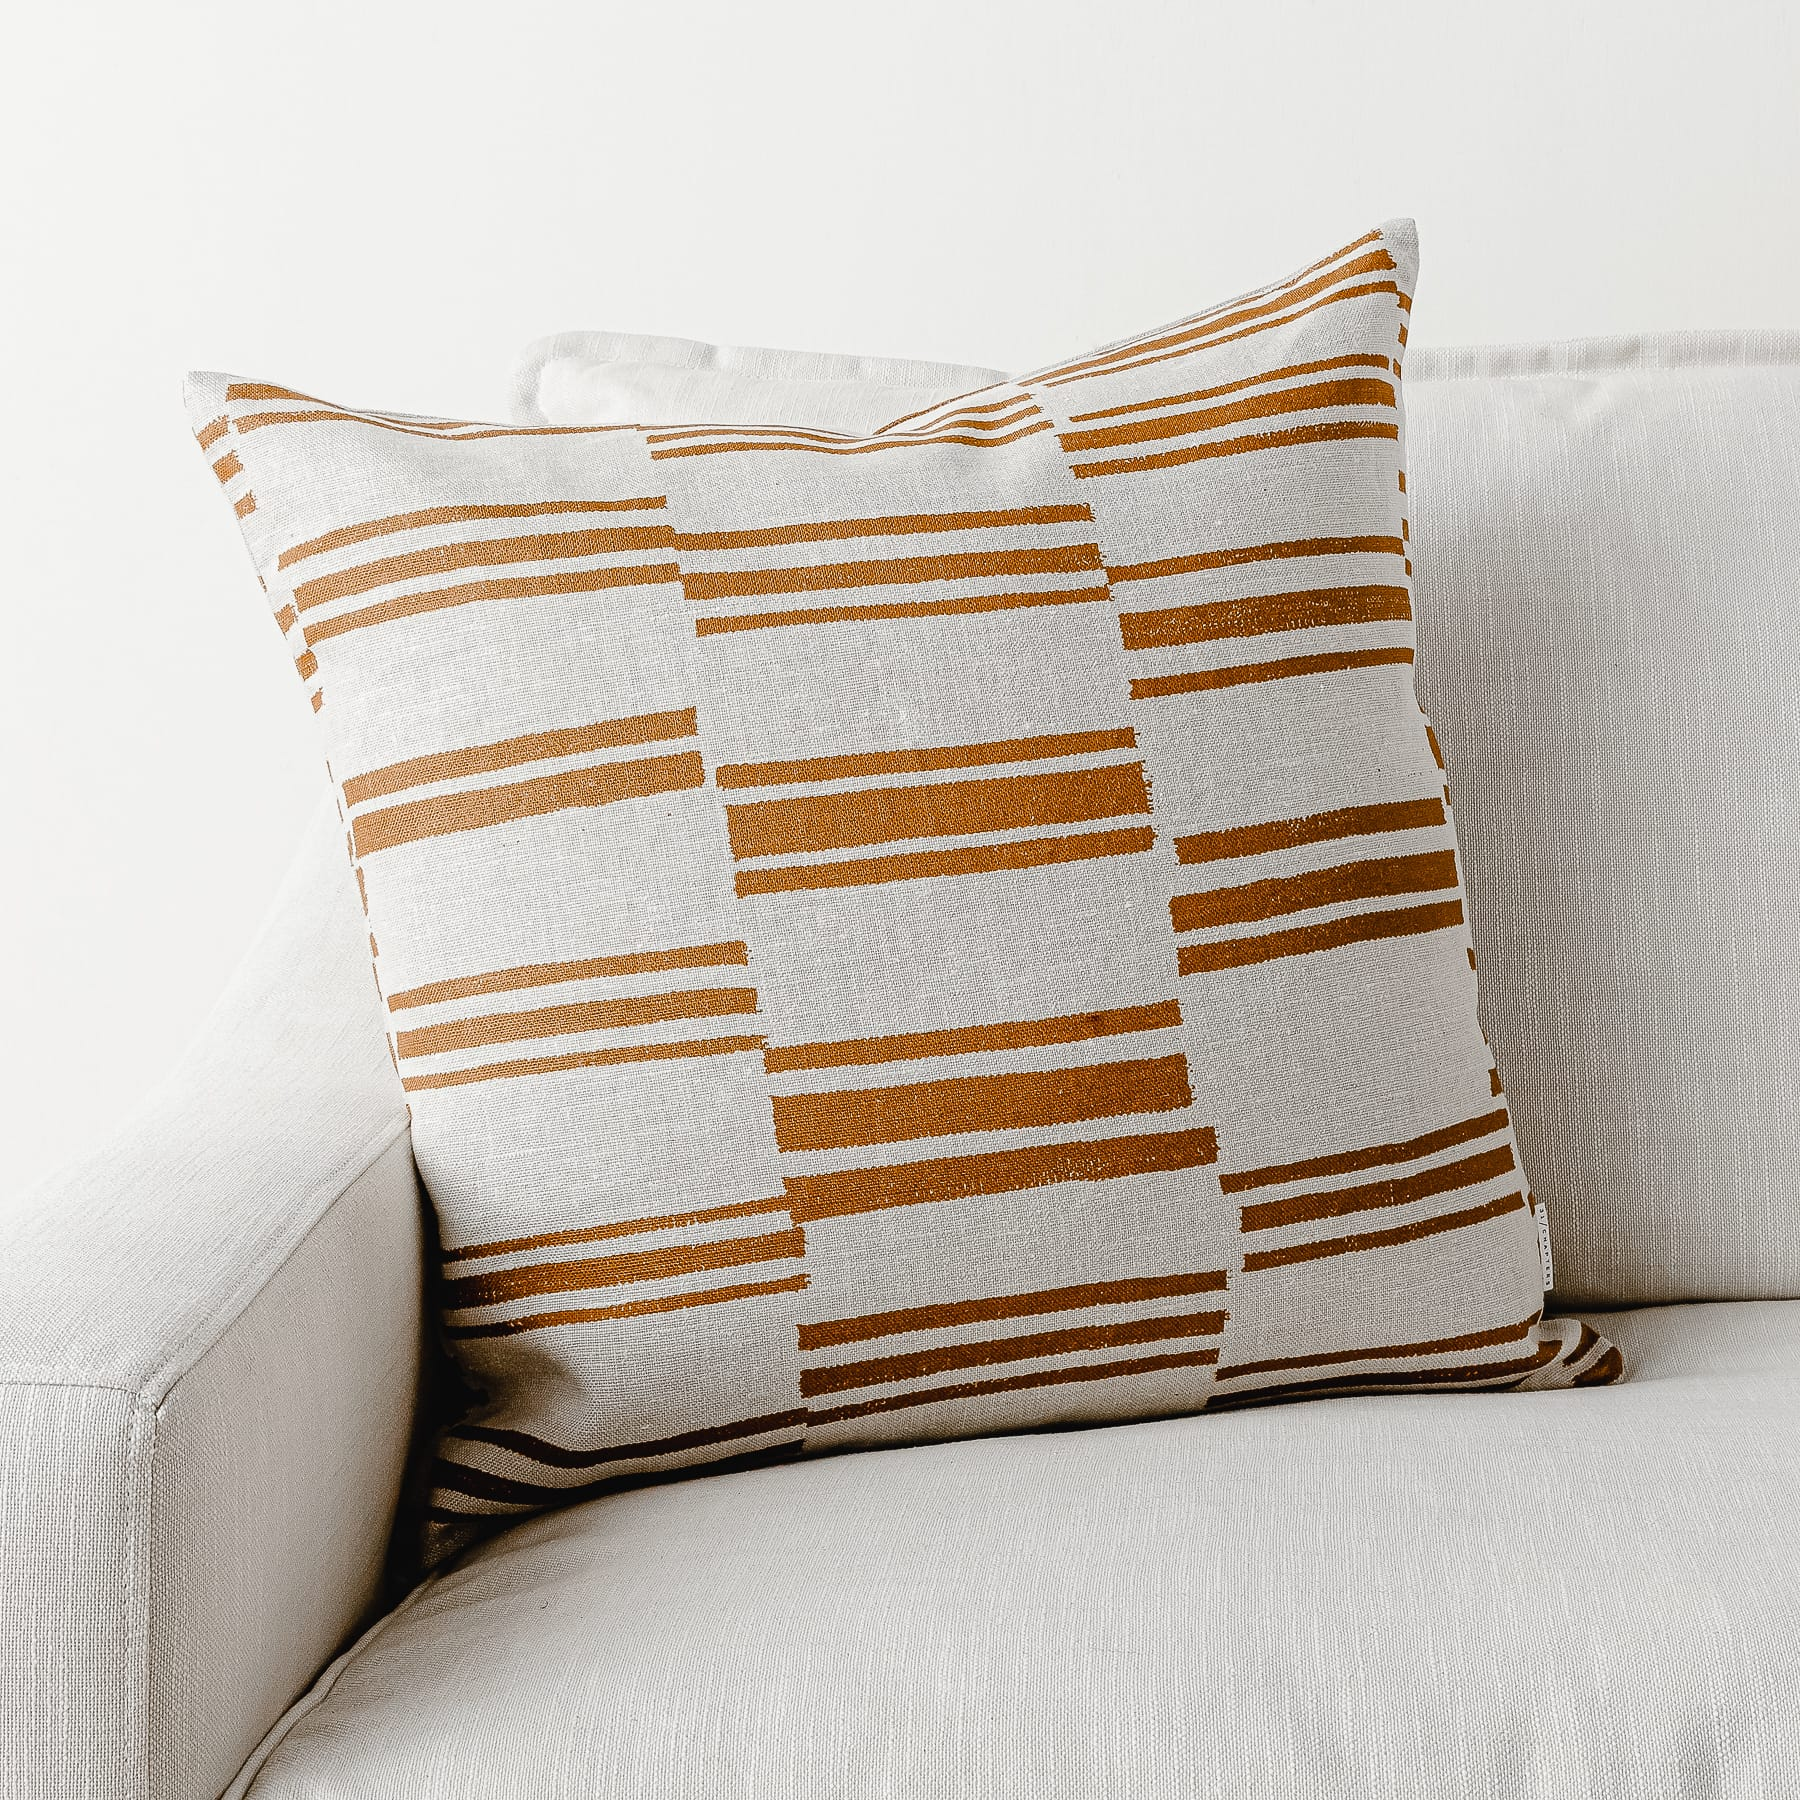 The Boden Pillow